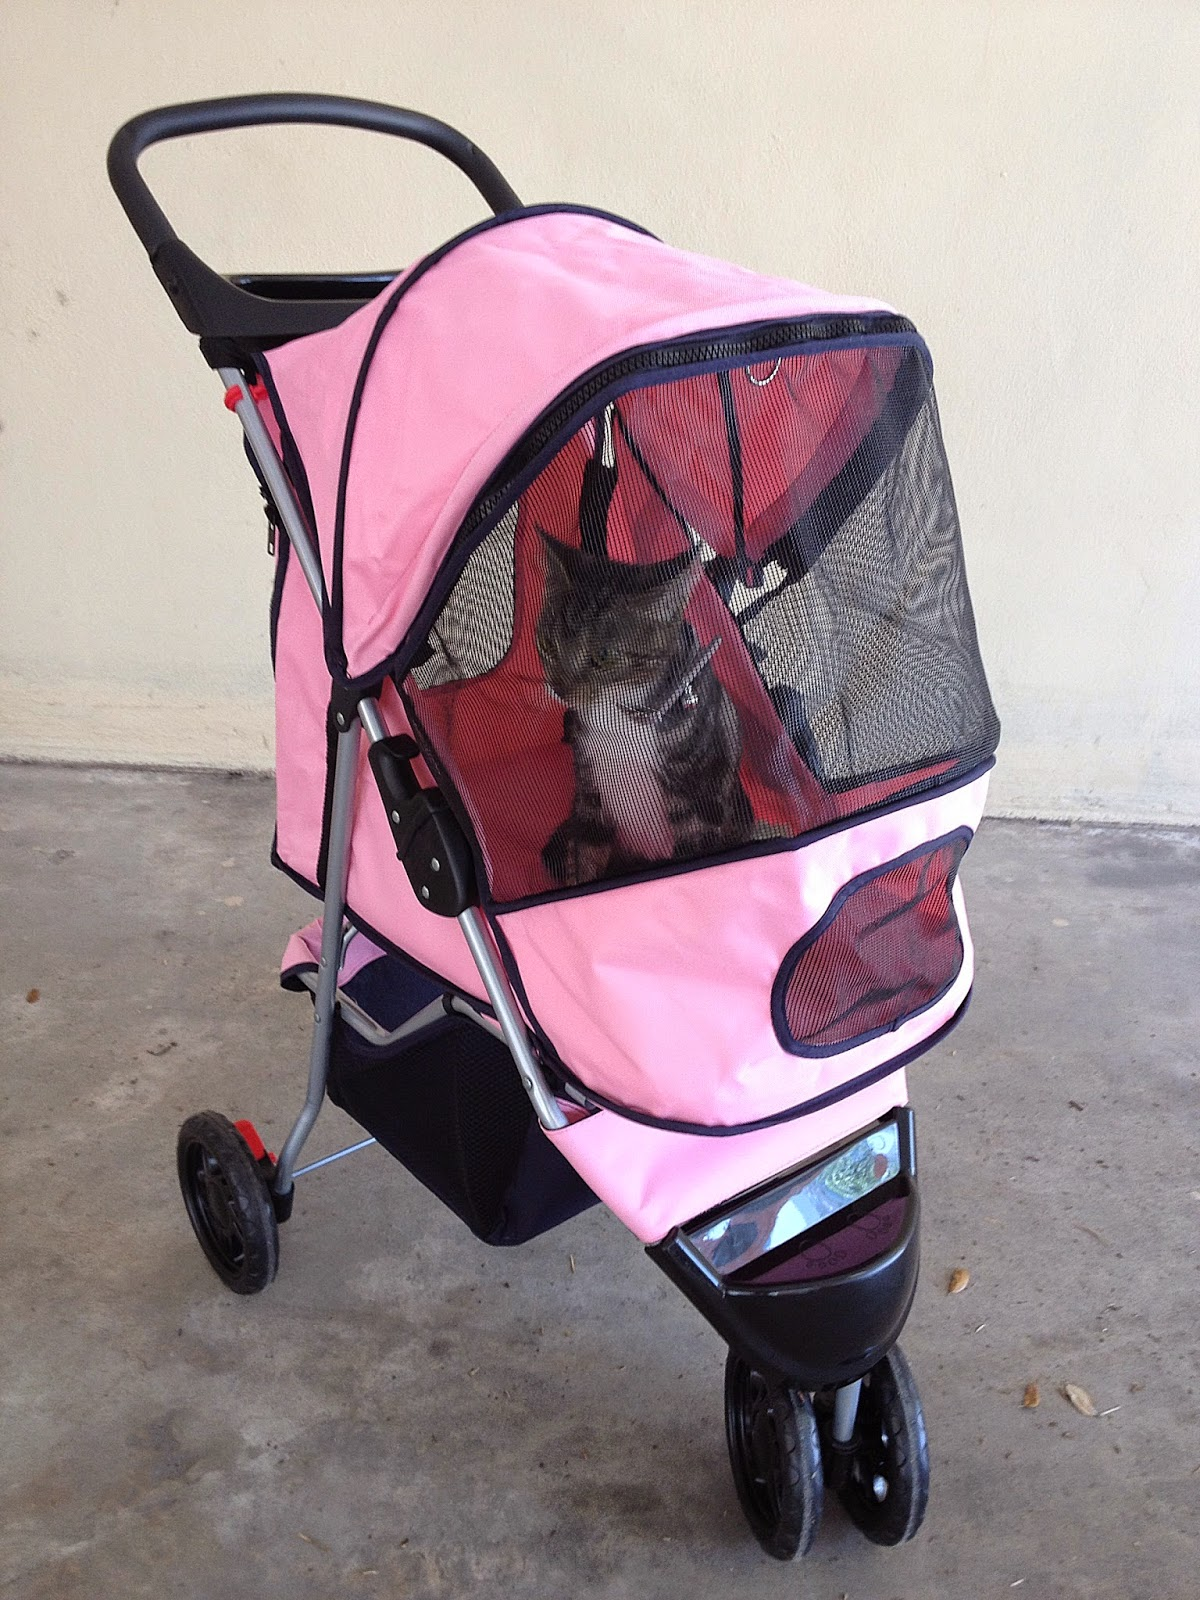 3 Cat Gift Ideas, Cats, Caturday, Cat Gifts, Pet Stroller, Cat Stroller